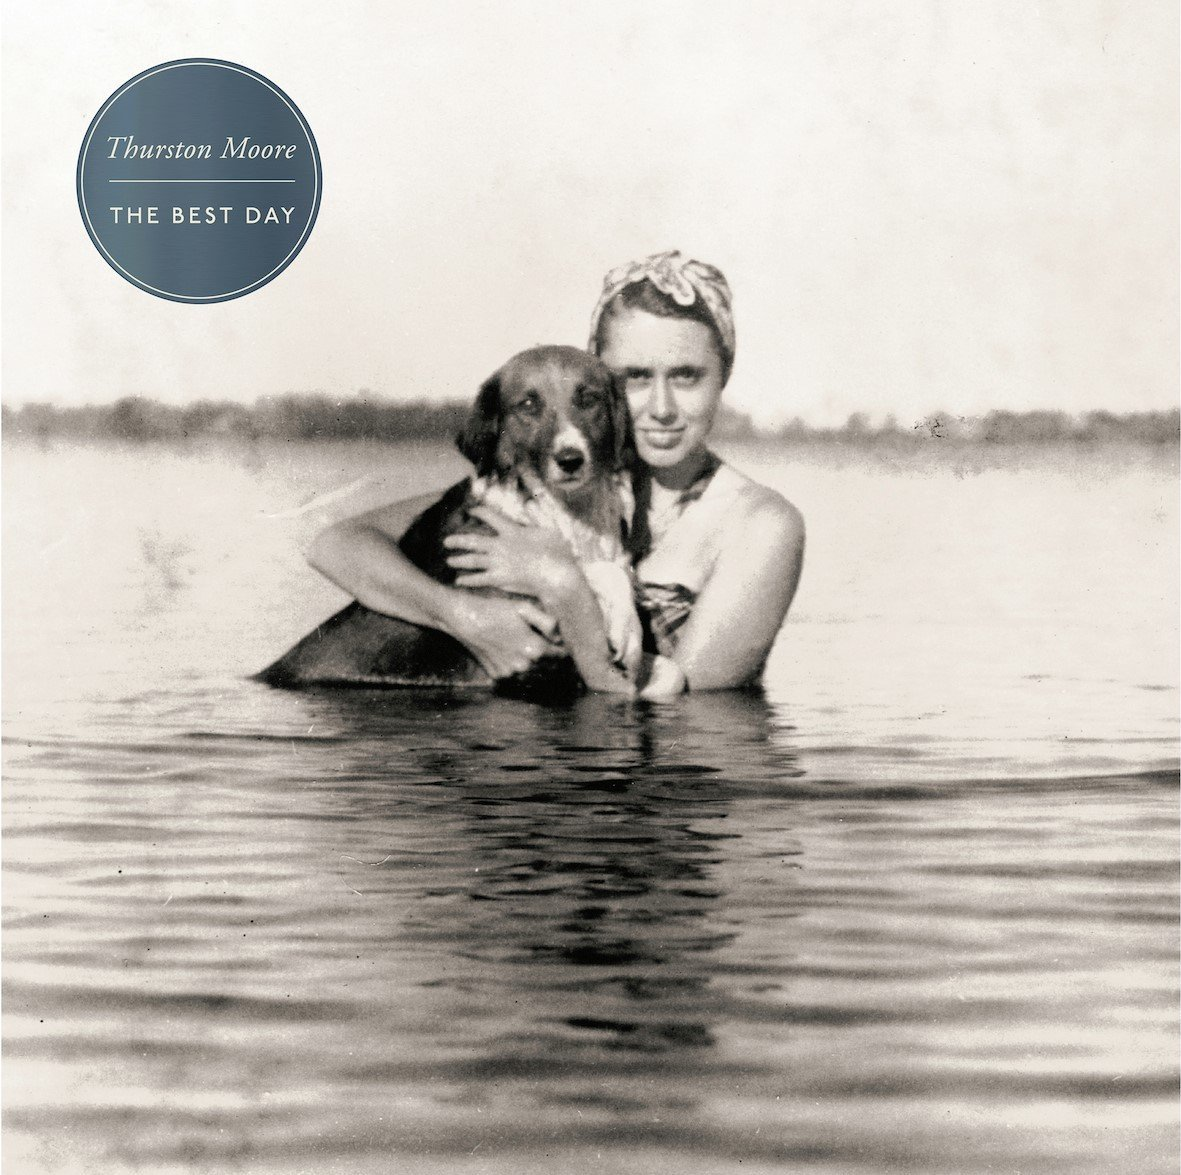 Thurston Moore's album, The Best Day, is out now.